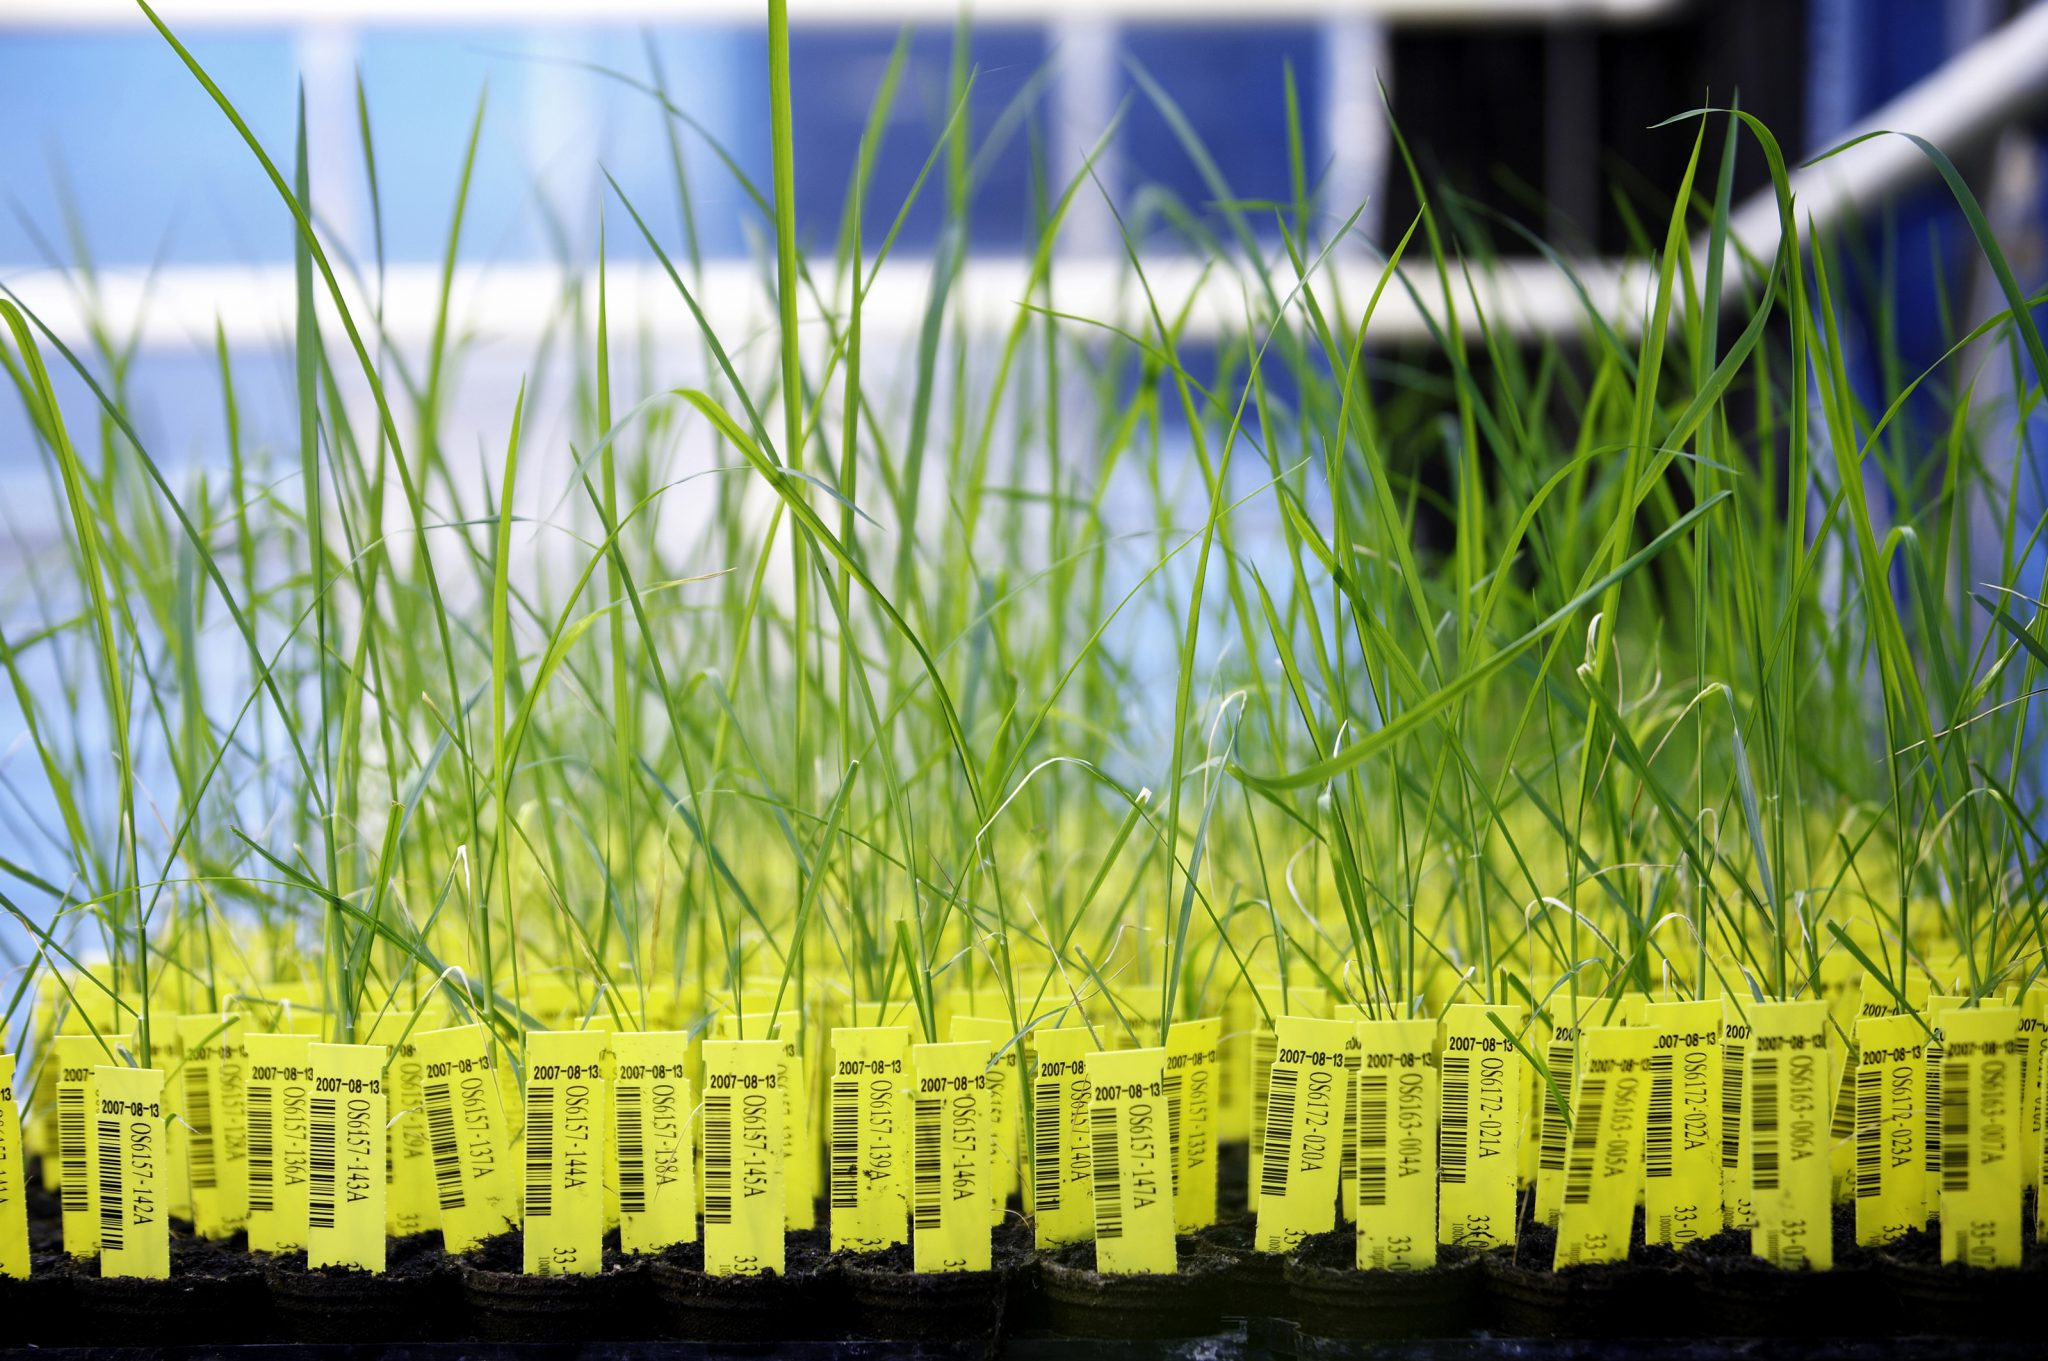 Small-scale trials of GM crops